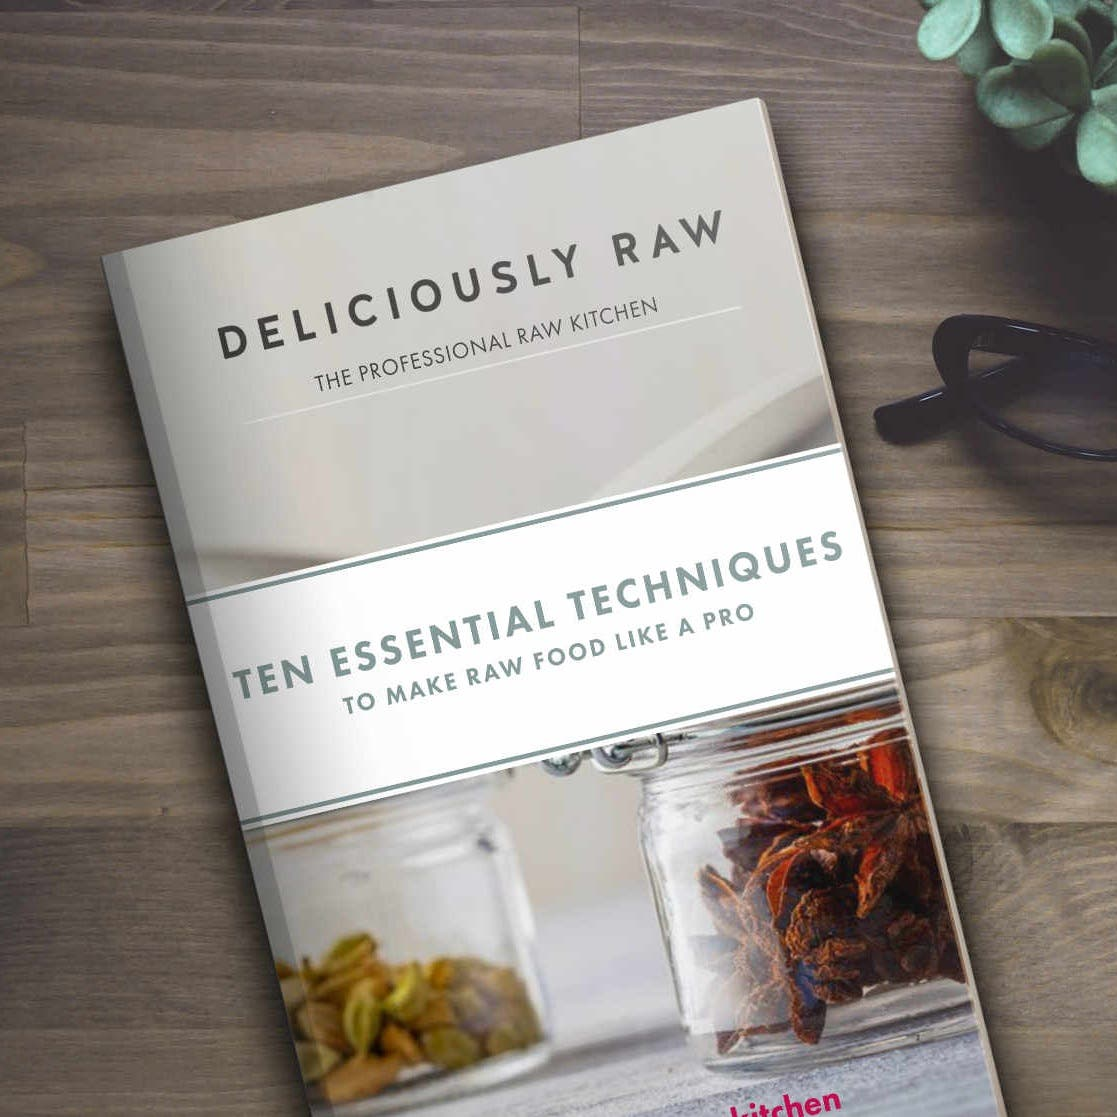 The essential techniques to make raw food like a pro